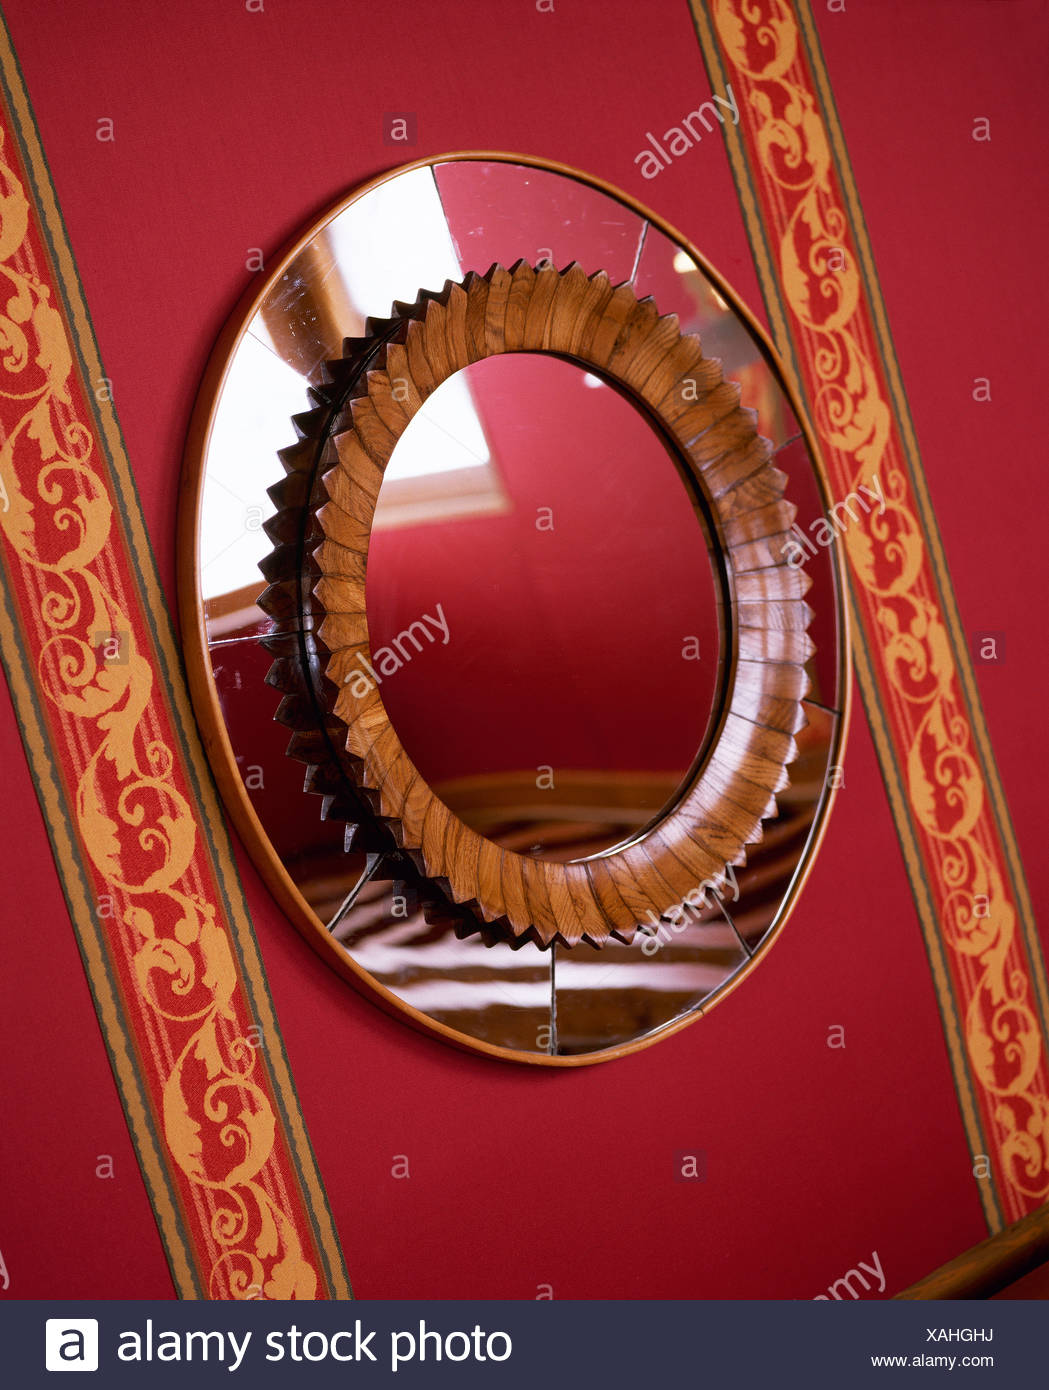 Close Up Of Decorative Circular Mirror On Red Wall With Patterned